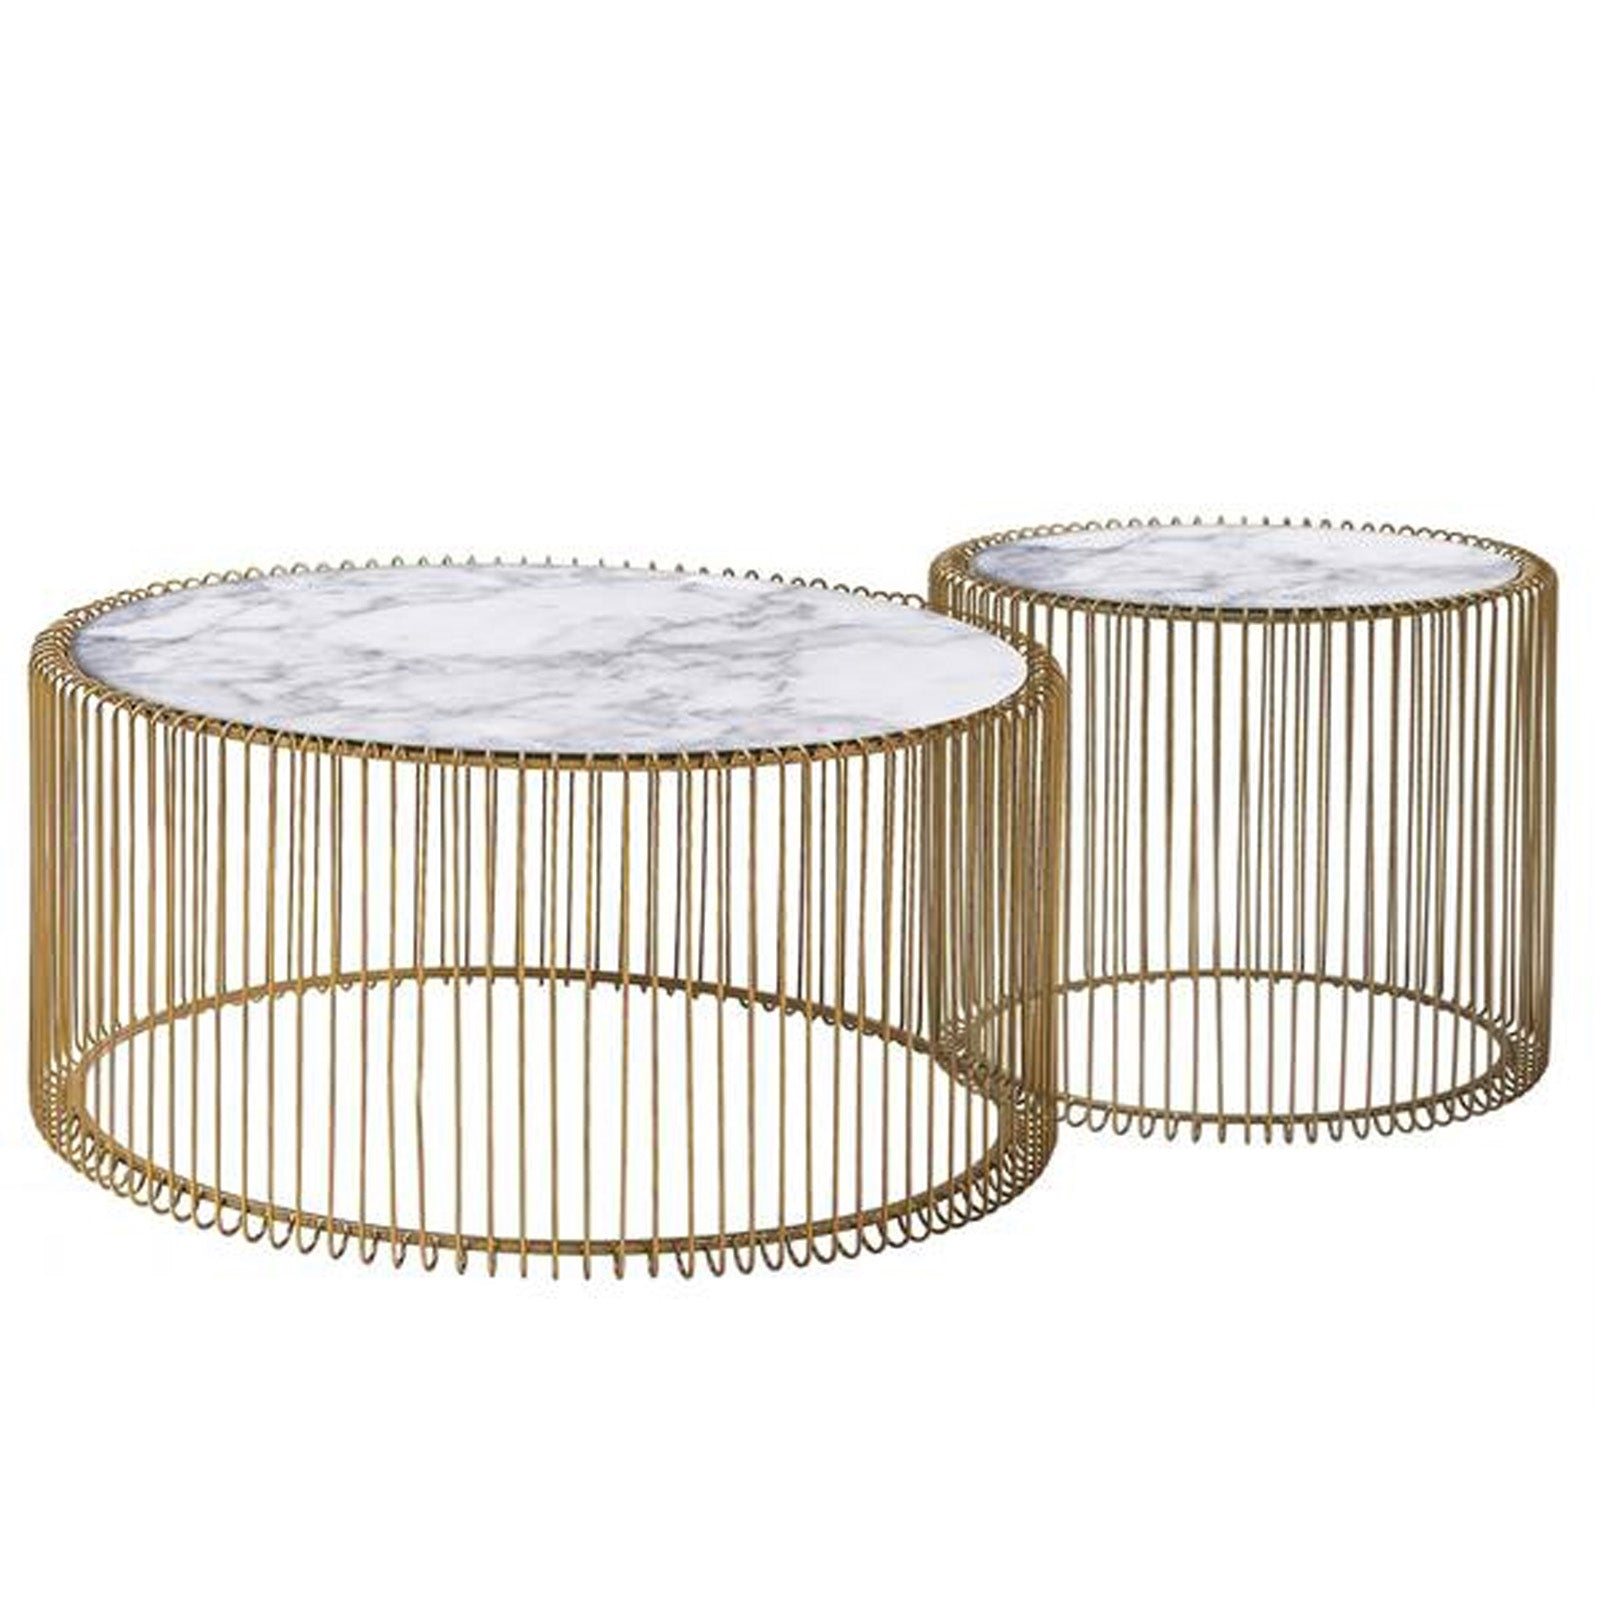 Set of 2 Natural Marble & Stainless Steel Table BP8808 G -  طقم من 2 طاولة رخام طبيعي وستانلس ستيل - Shop Online Furniture and Home Decor Store in Dubai, UAE at ebarza